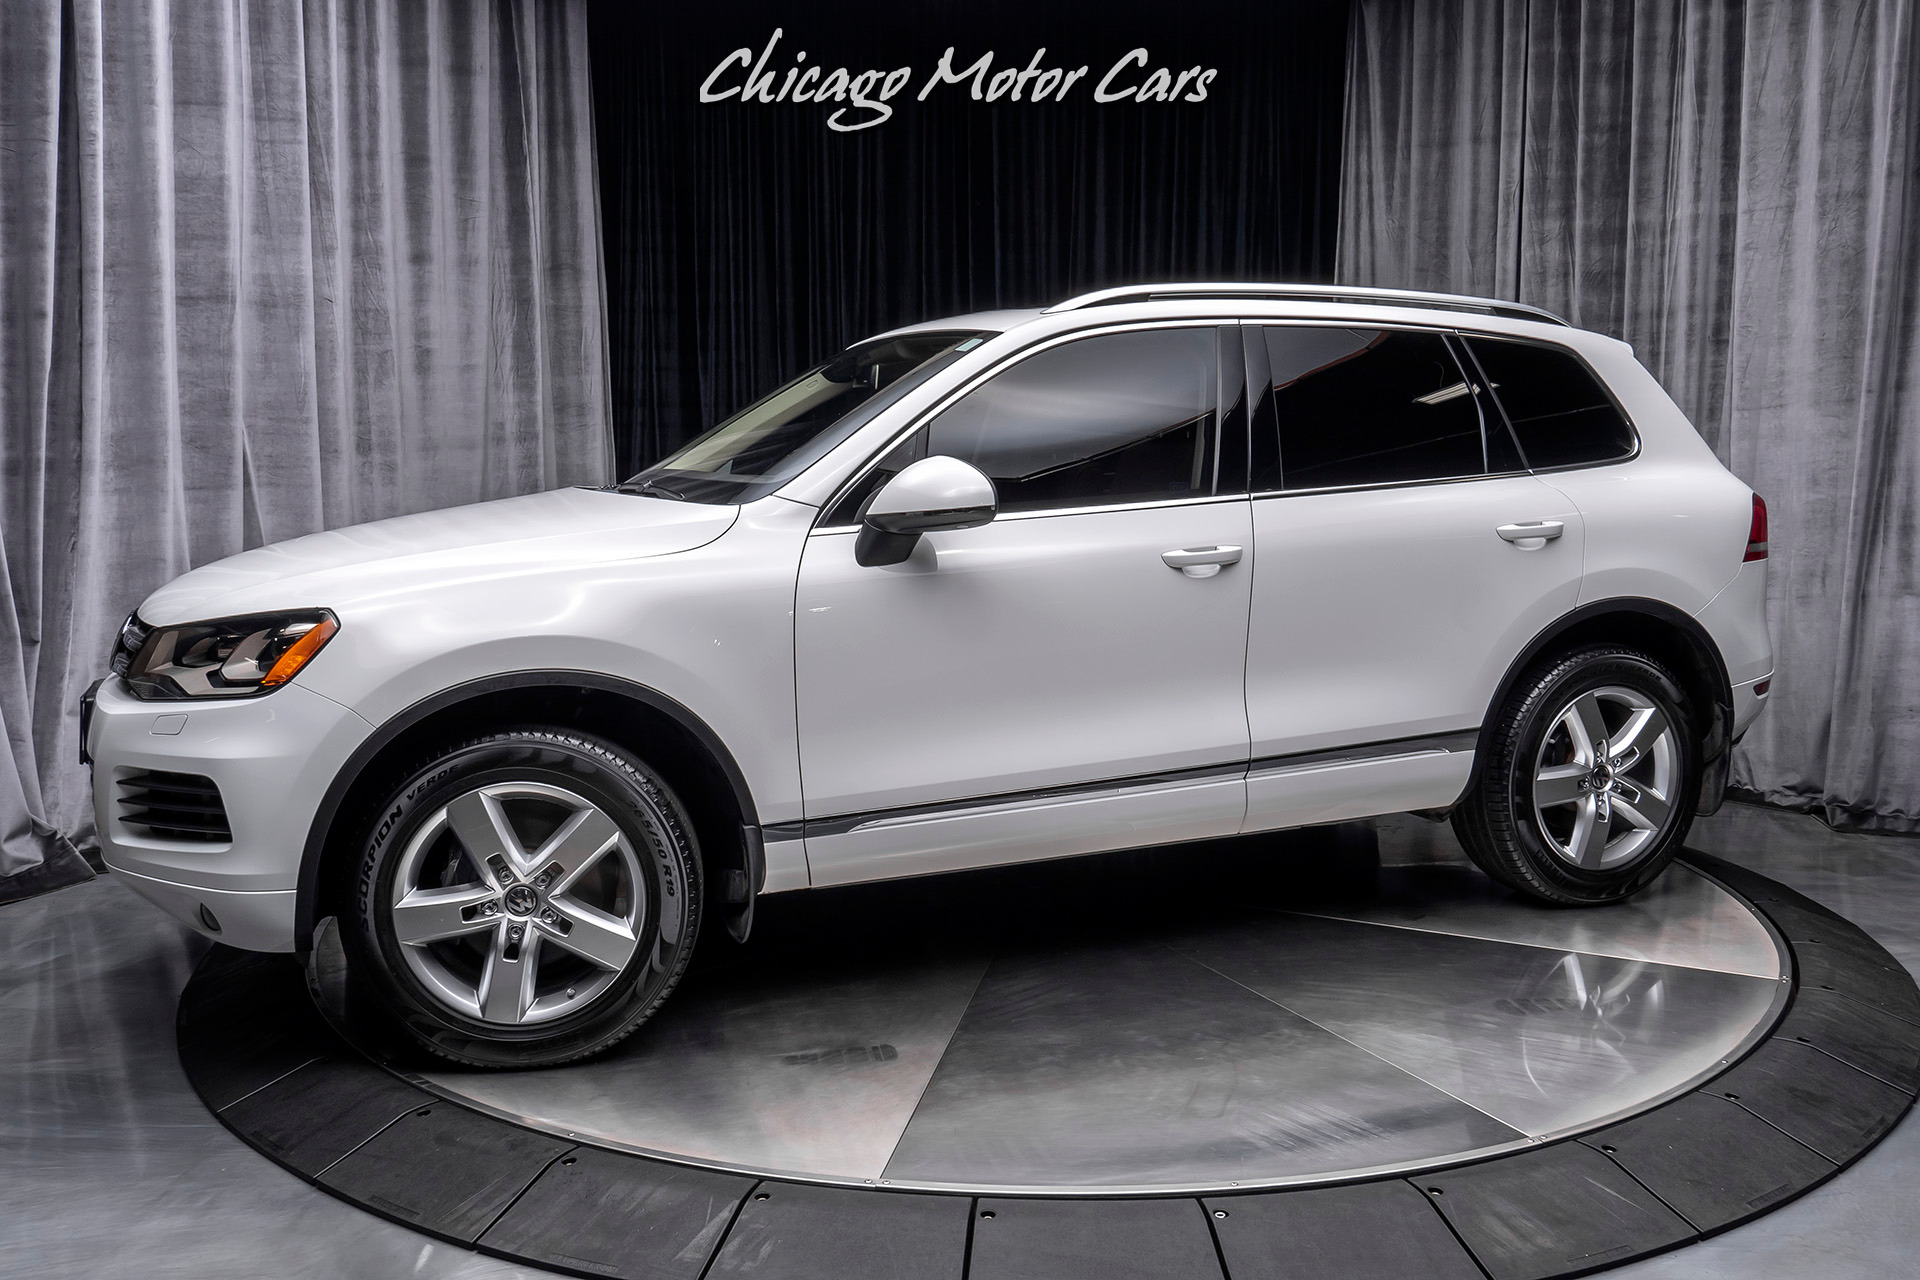 Used 2012 Volkswagen Touareg Tdi Lux Awd Suv For Sale